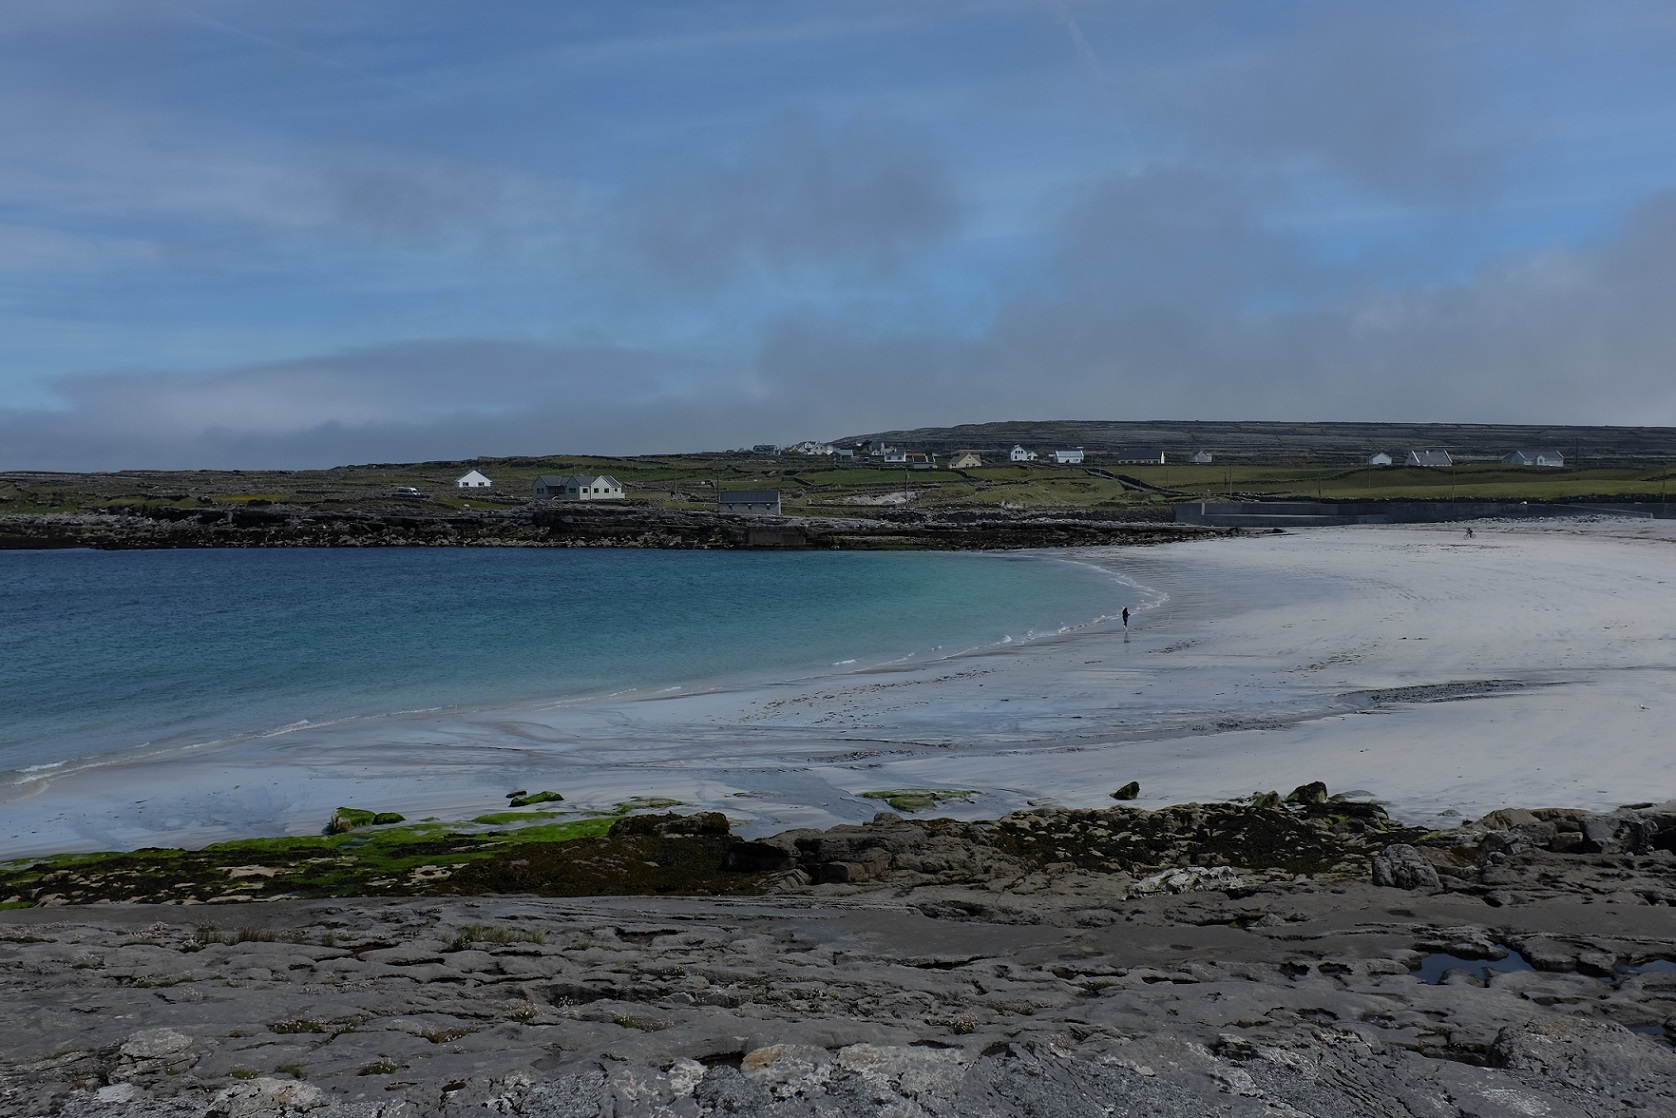 Photo 2 of Inis Mór (Photo credit: Anna Hoffman)